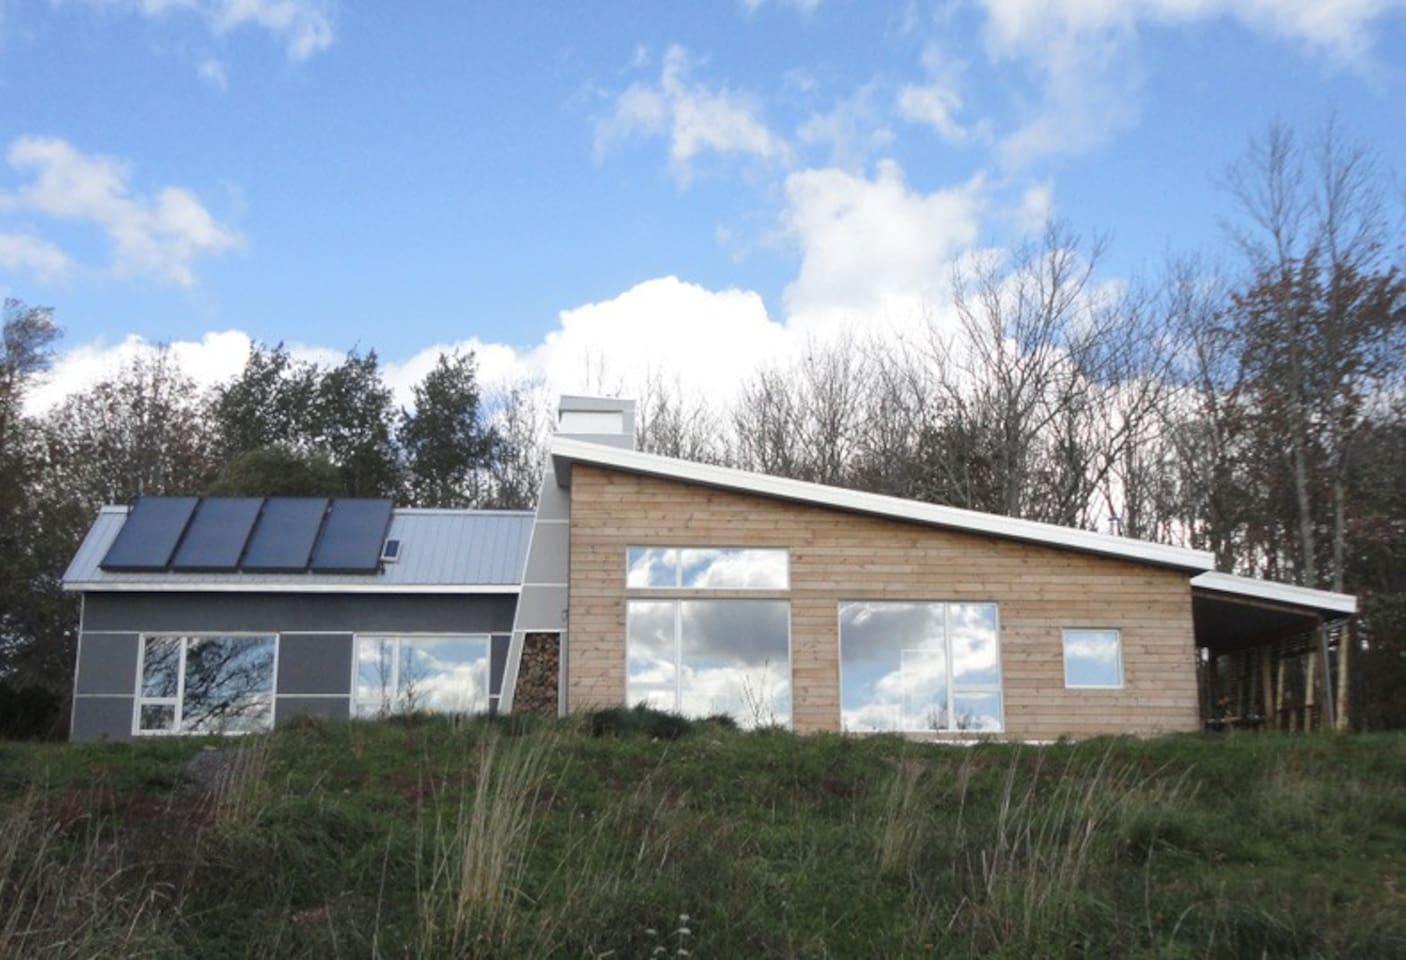 Concept House has a commanding view across the pasture to the inlet.